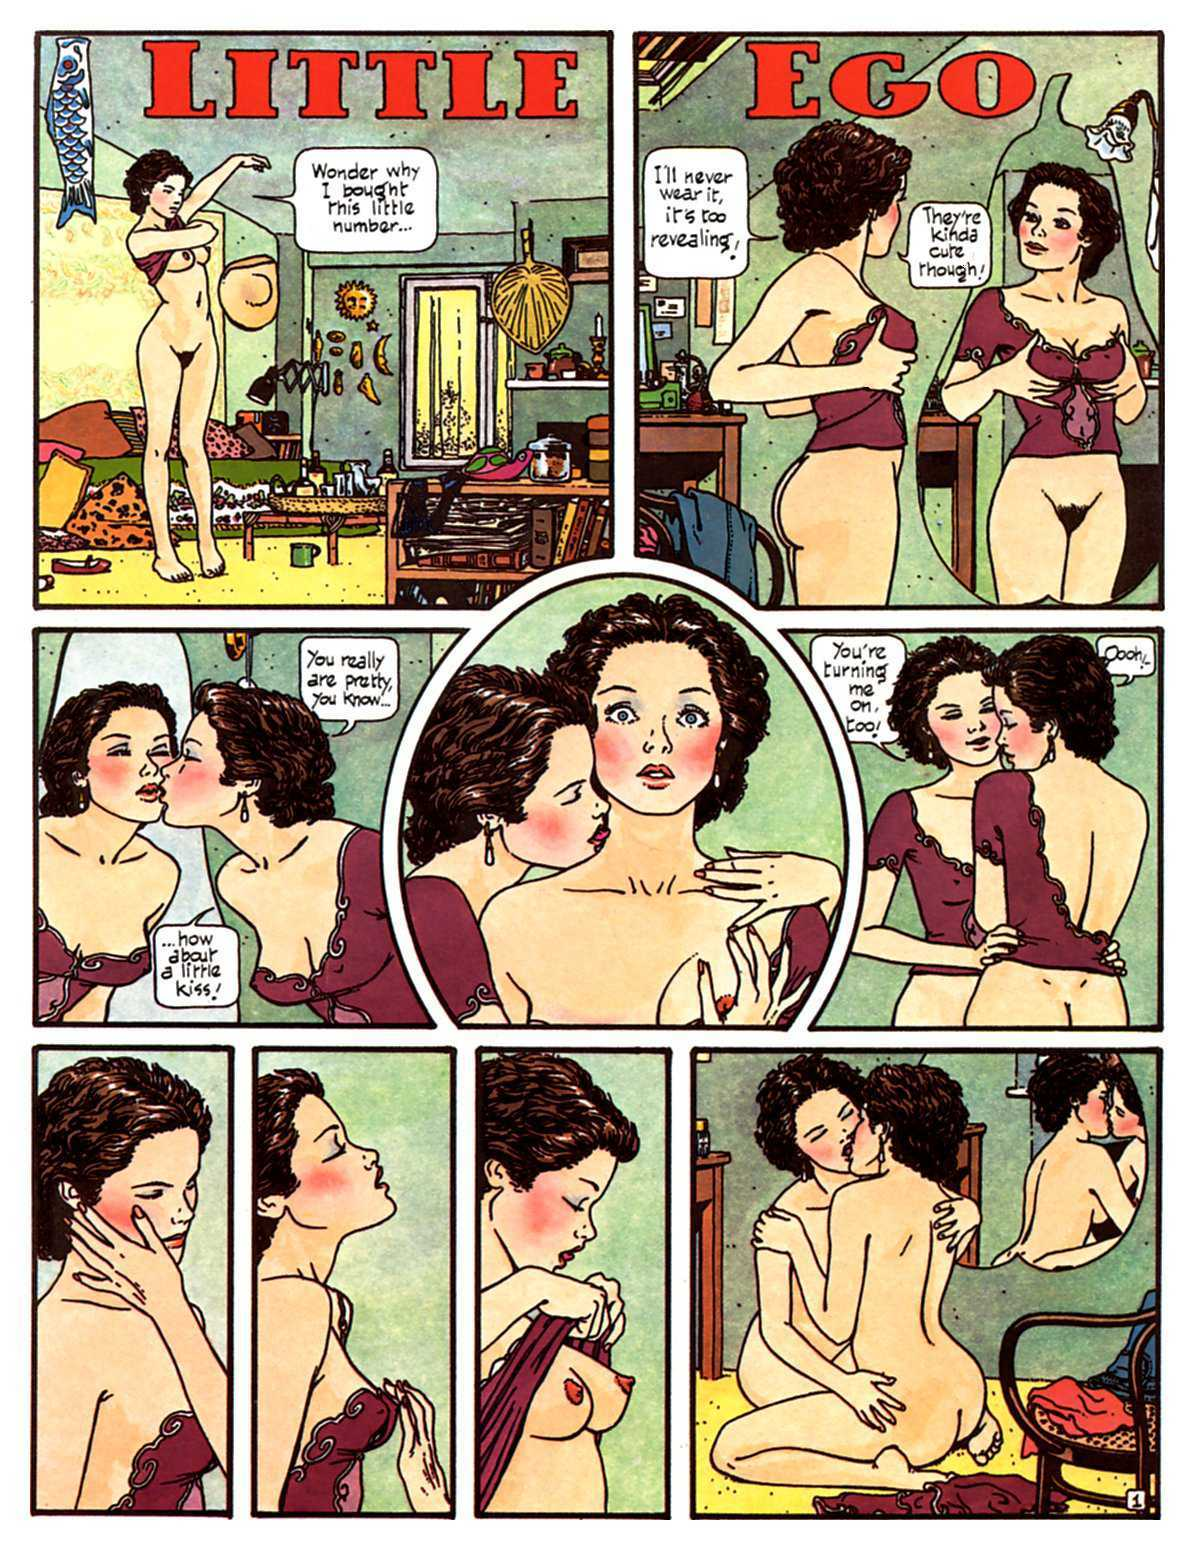 Little Ego9 free sex comic